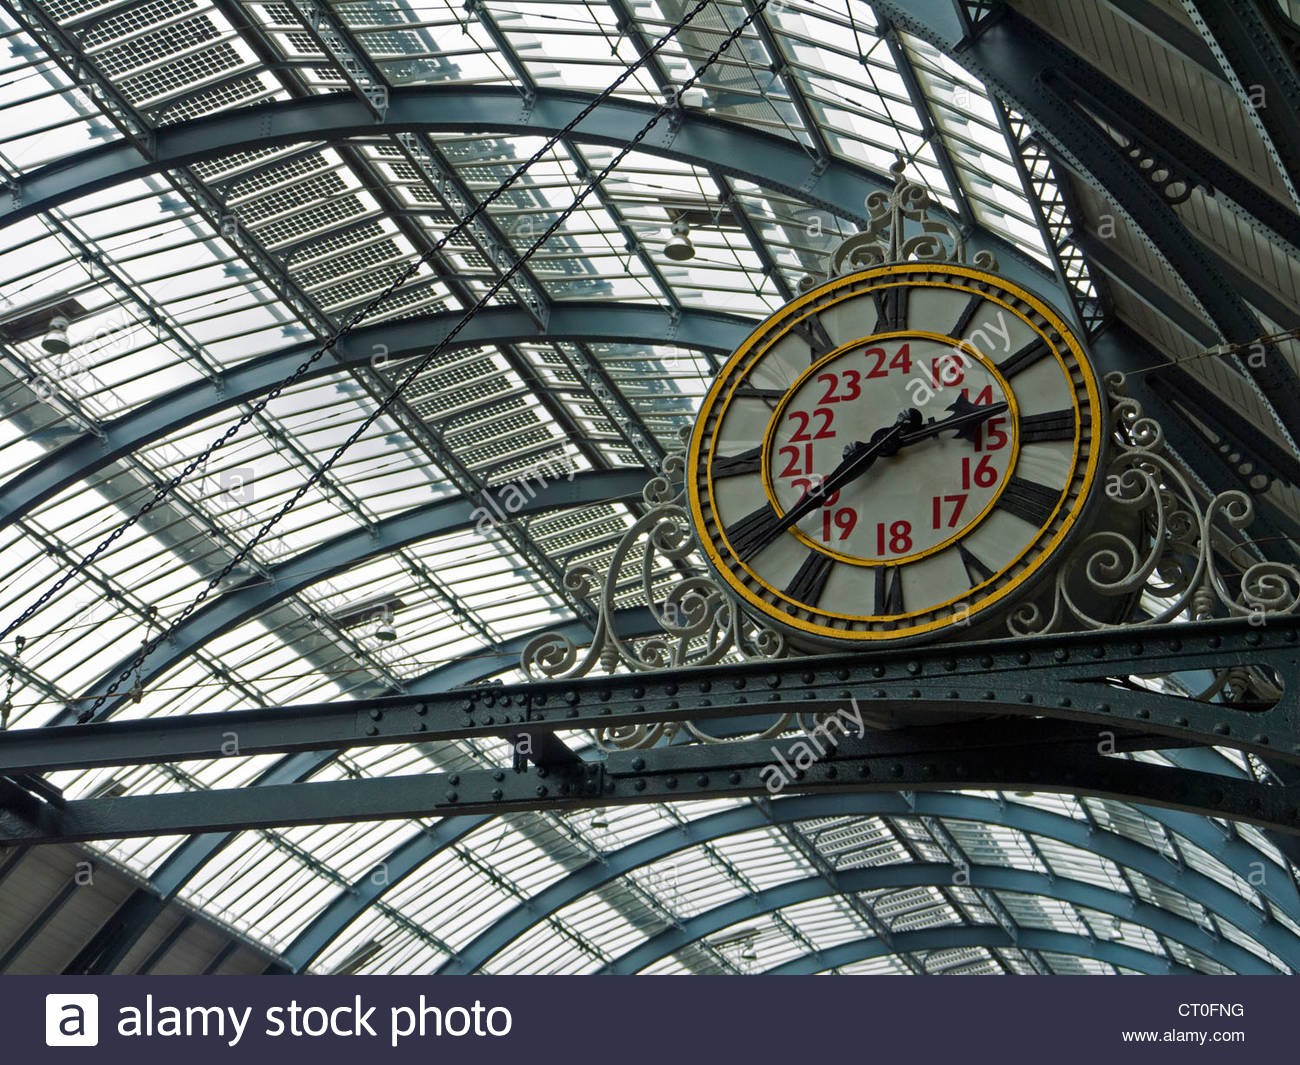 Kings Cross Railway Station old analogue Clock under roof London England UK - Stock Image